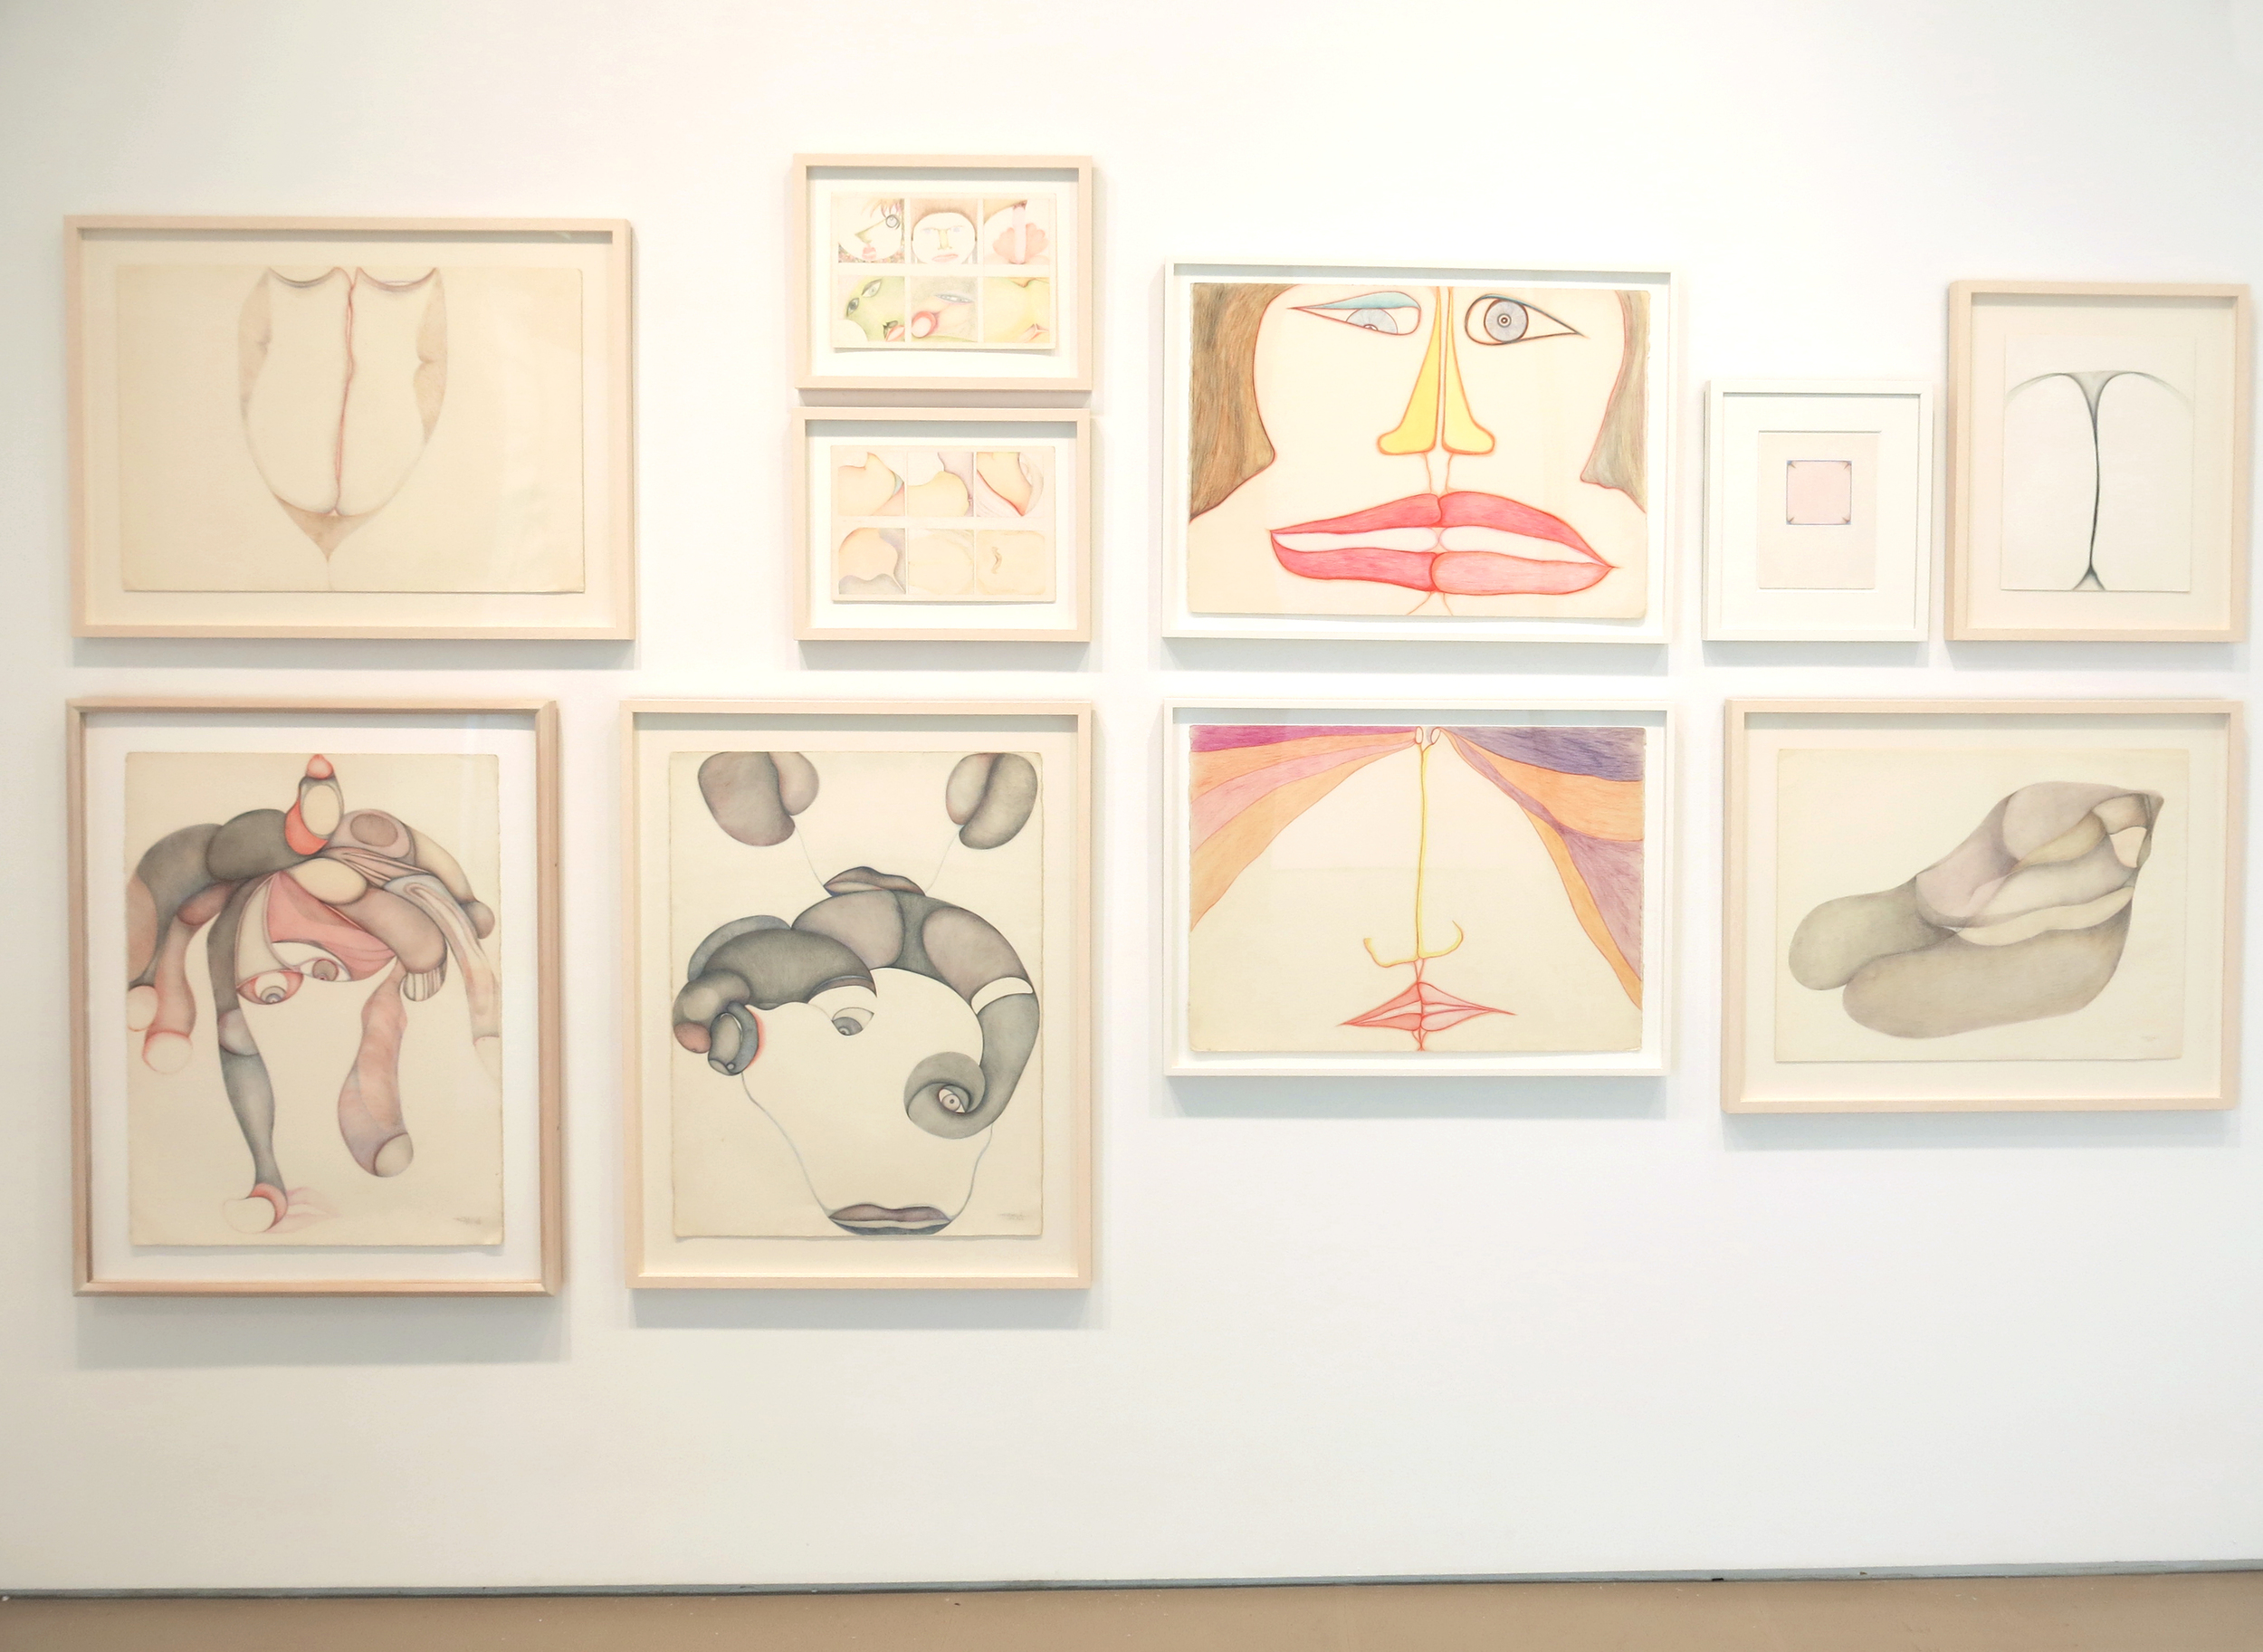 Huguette Caland   Early Works: 1970-85 , 2014 Installation at Lombard Freid Gallery